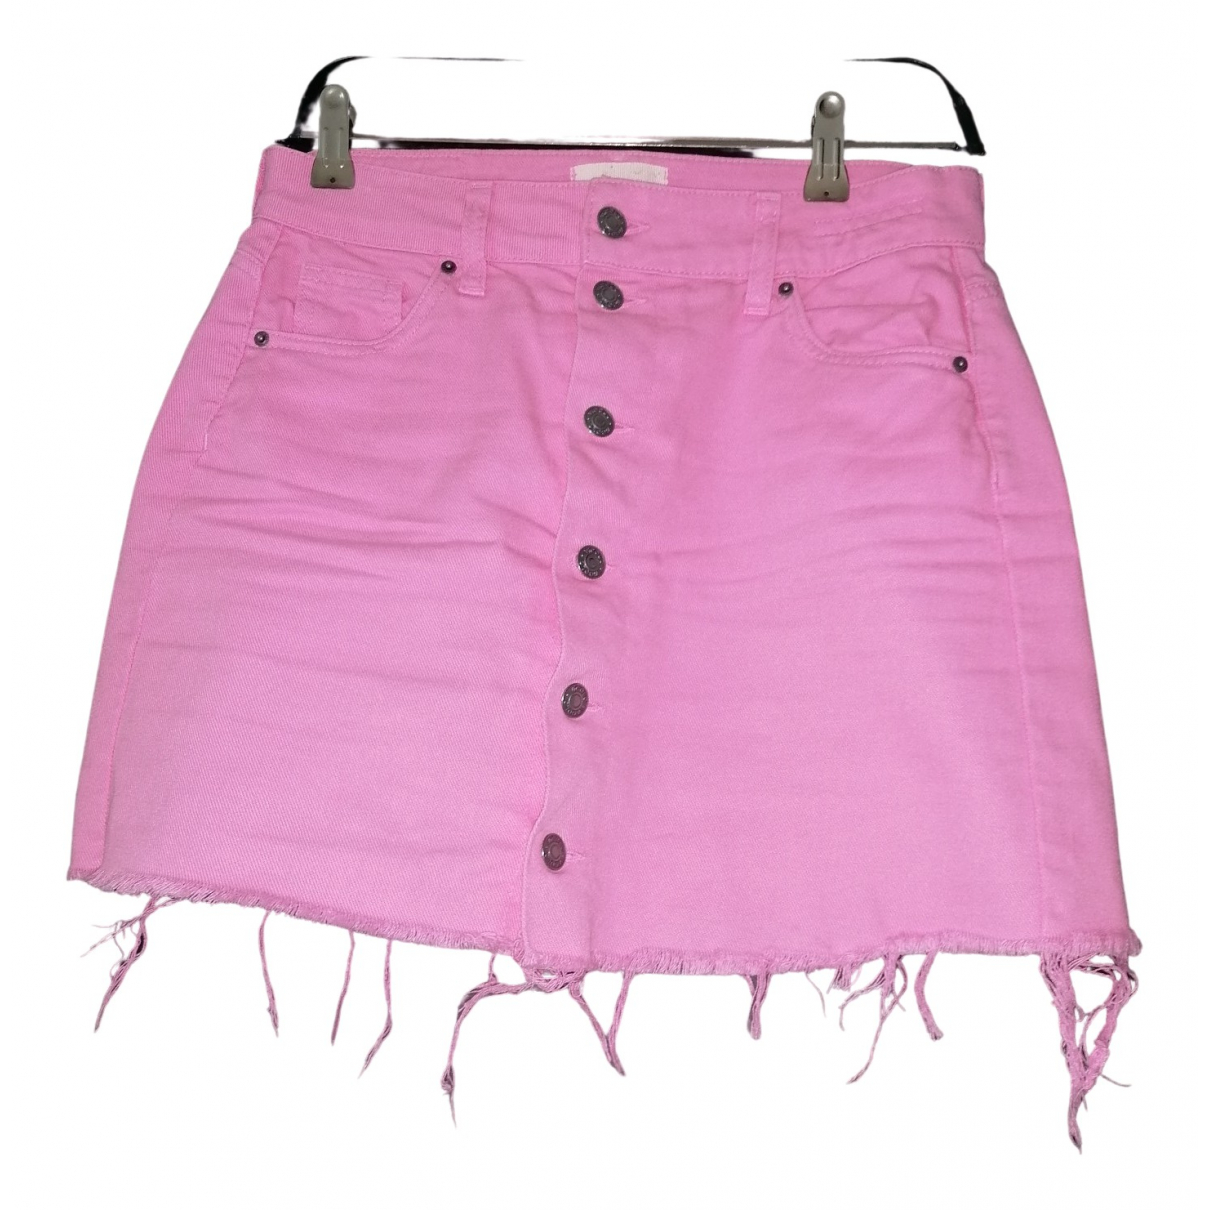 Vicolo \N Pink Cotton skirt for Women M International